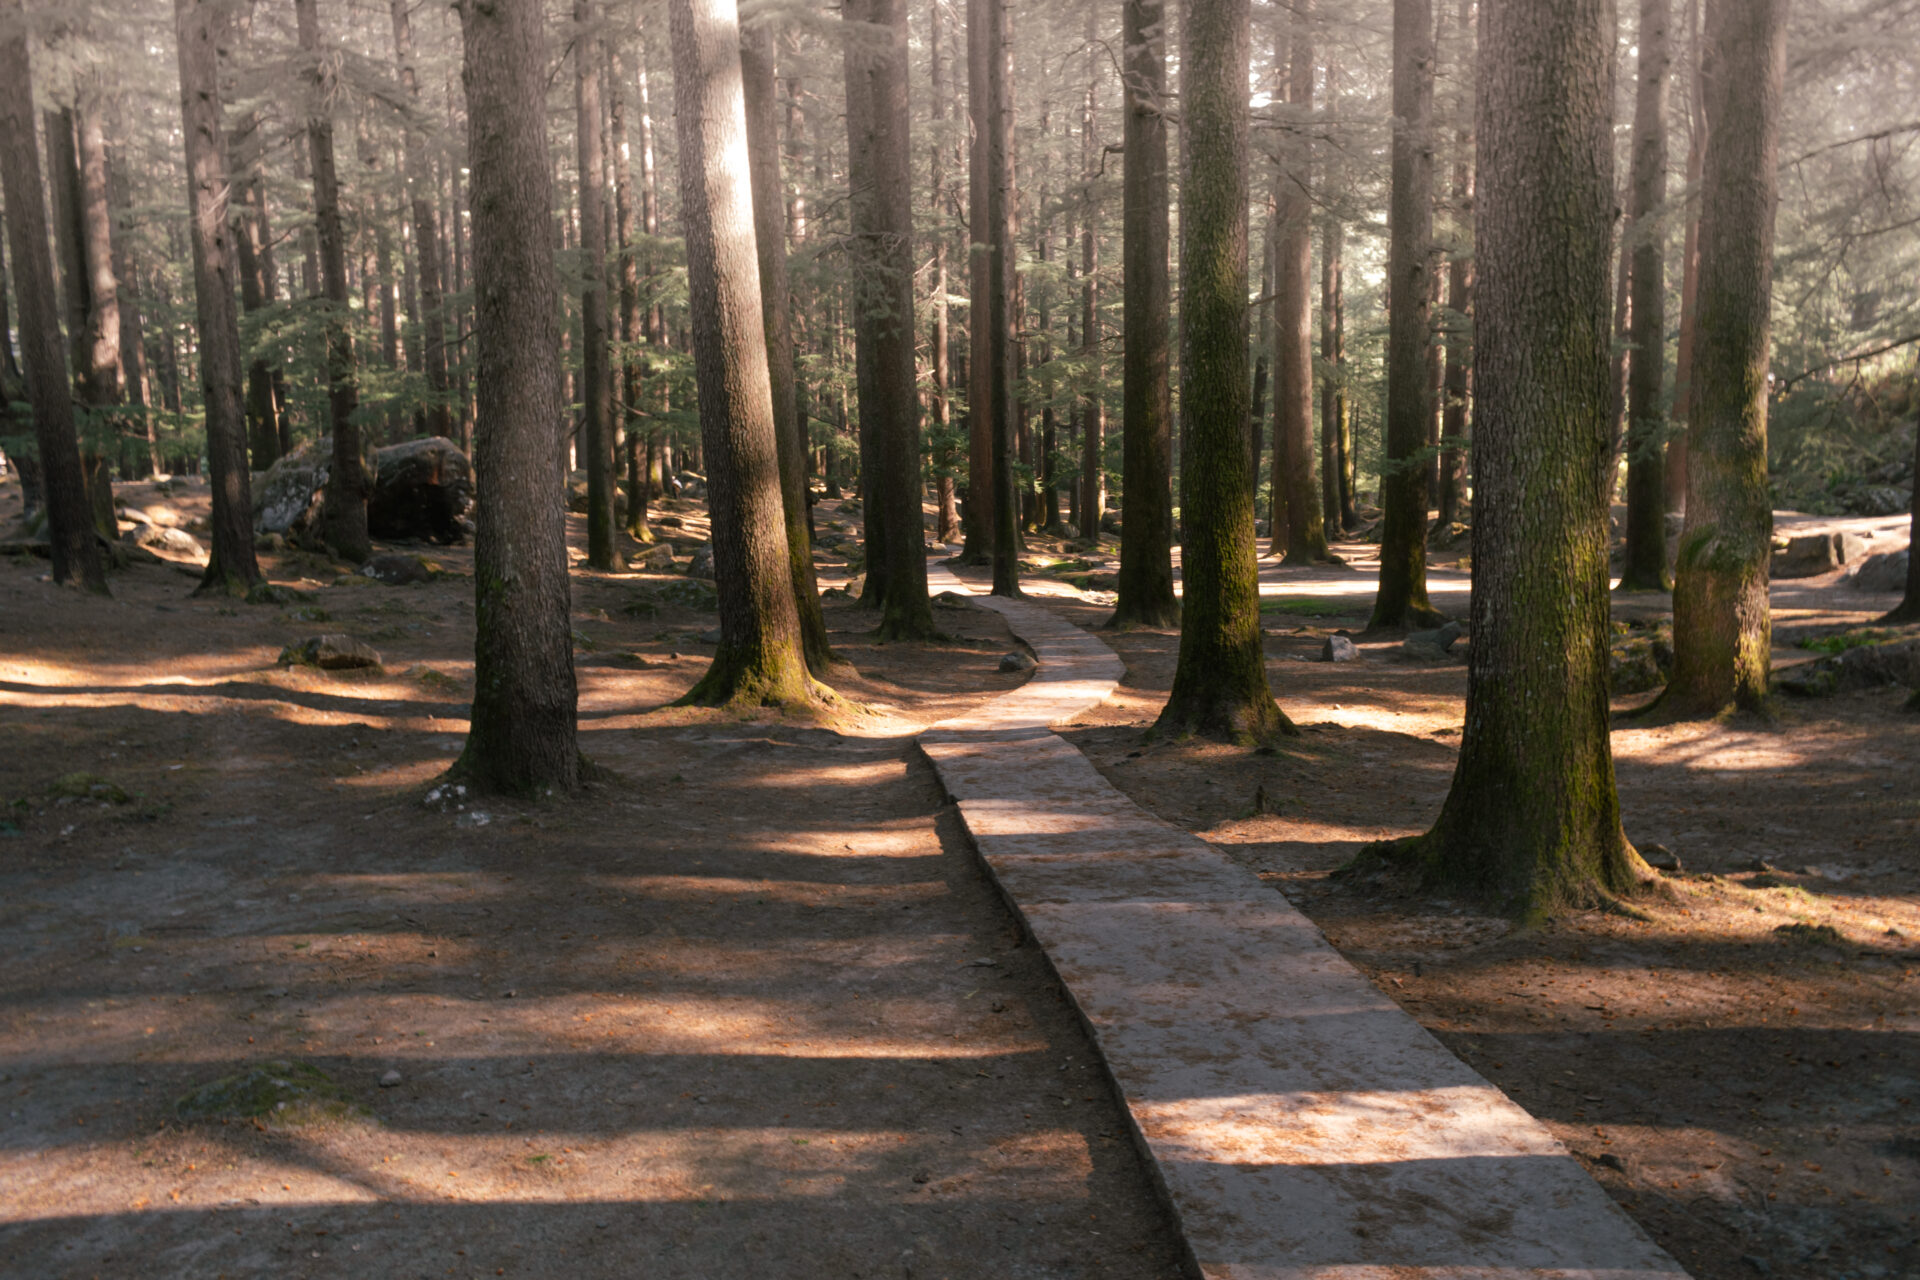 Trail Surrounded by Tall Deodar Trees